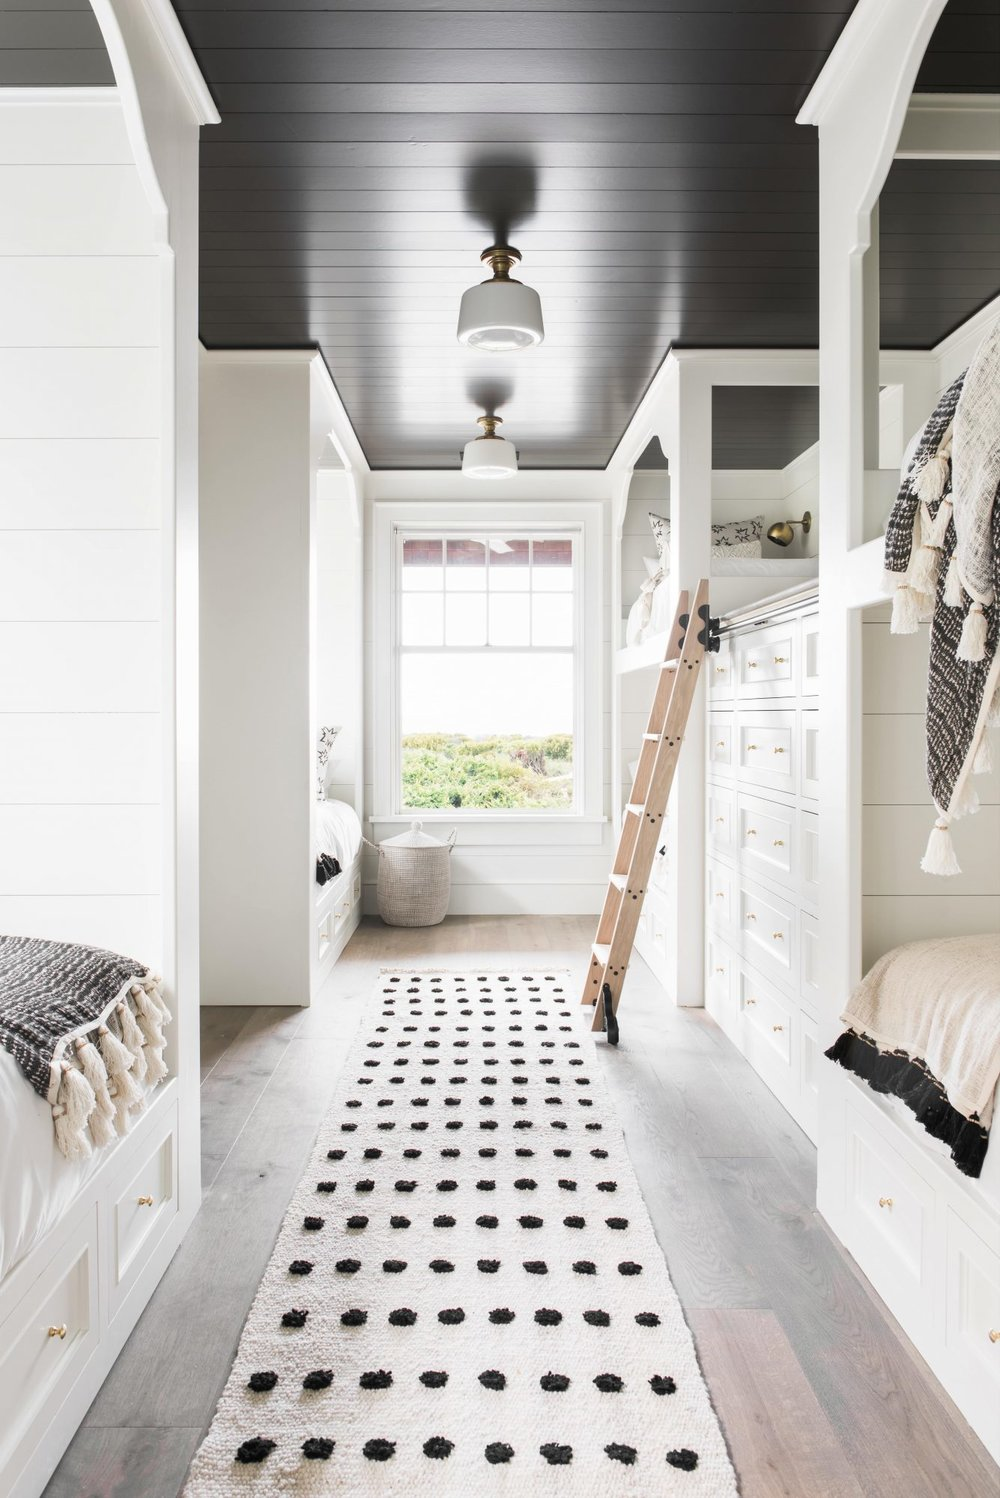 We are loving the use of black paint on the ceiling in this fun and cozy bunk room! Beautifully designed by  @cortneybishopdesign  📷:  @kcharlottephoto